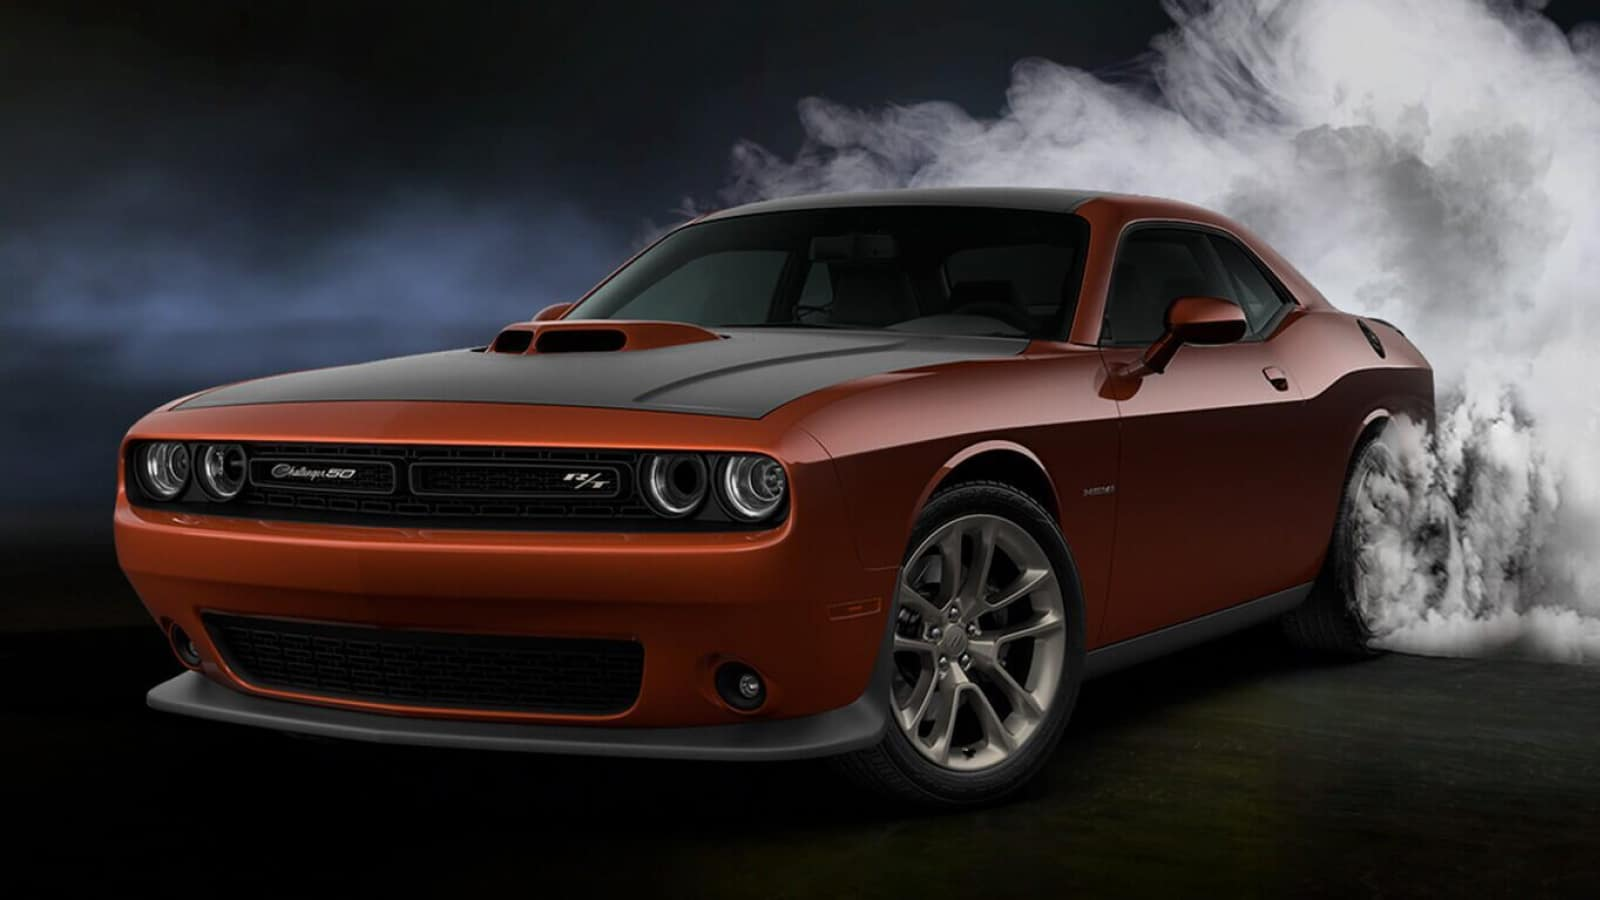 The sleek exterior of the 2020 Dodge Challenger